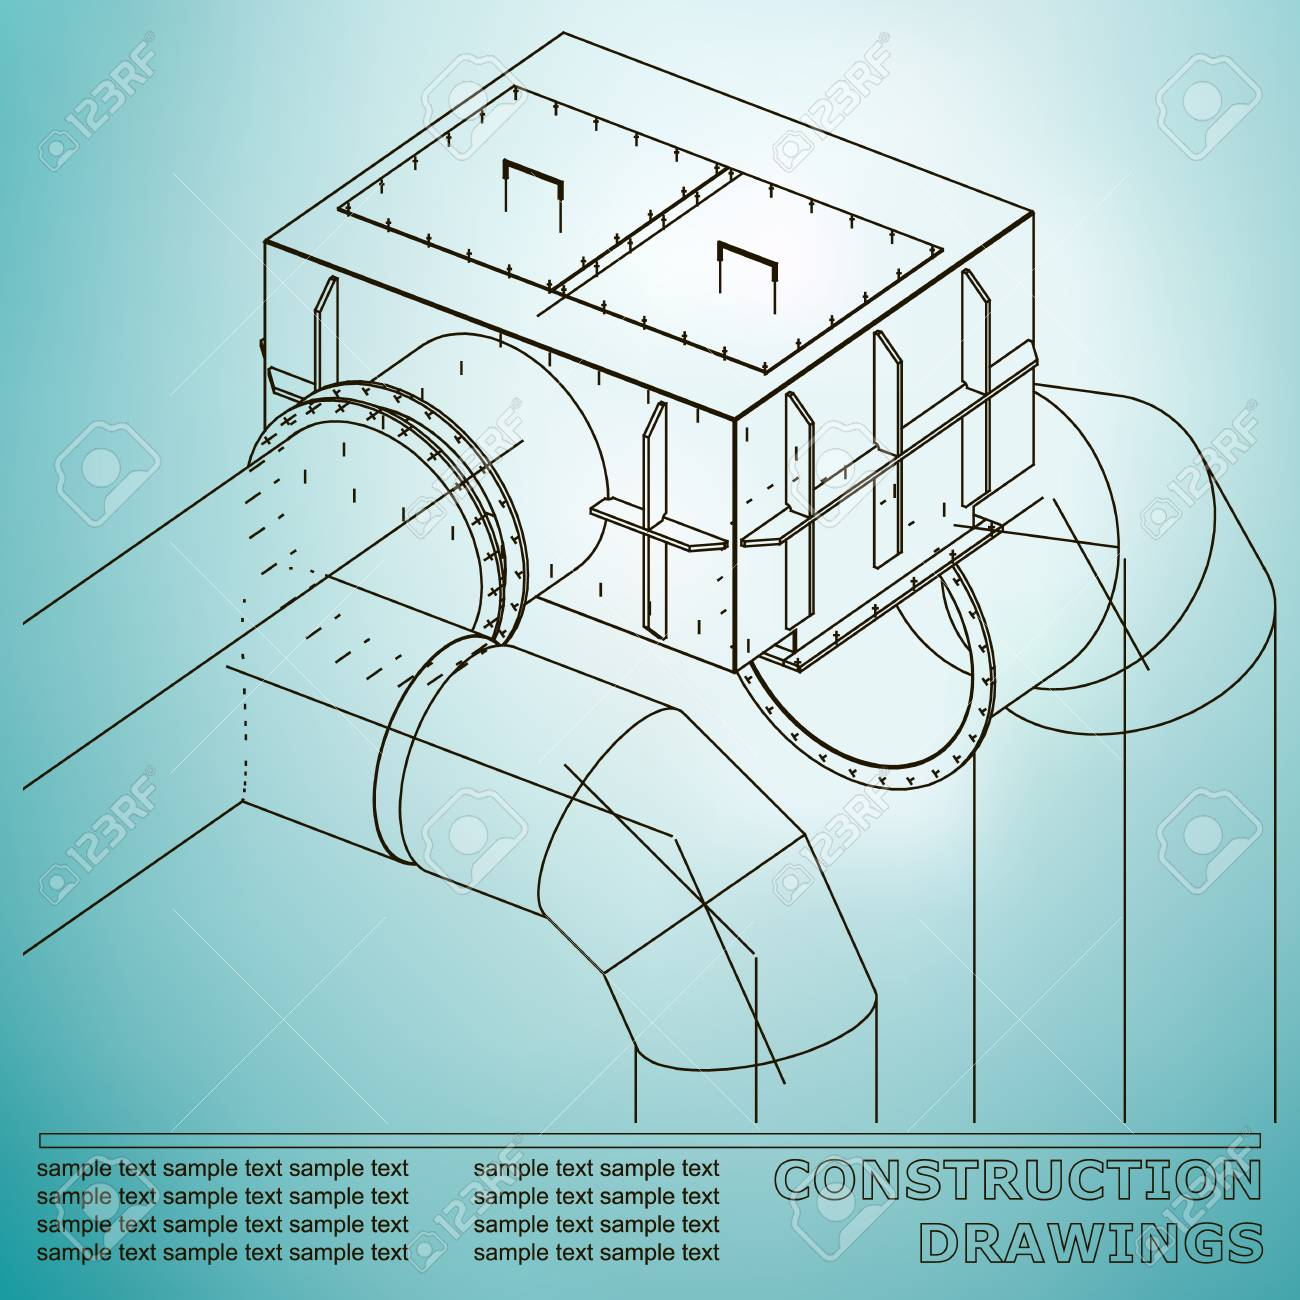 Drawings of structures pipes and pipe 3d blueprint of steel drawings of structures pipes and pipe 3d blueprint of steel structures light blue malvernweather Choice Image